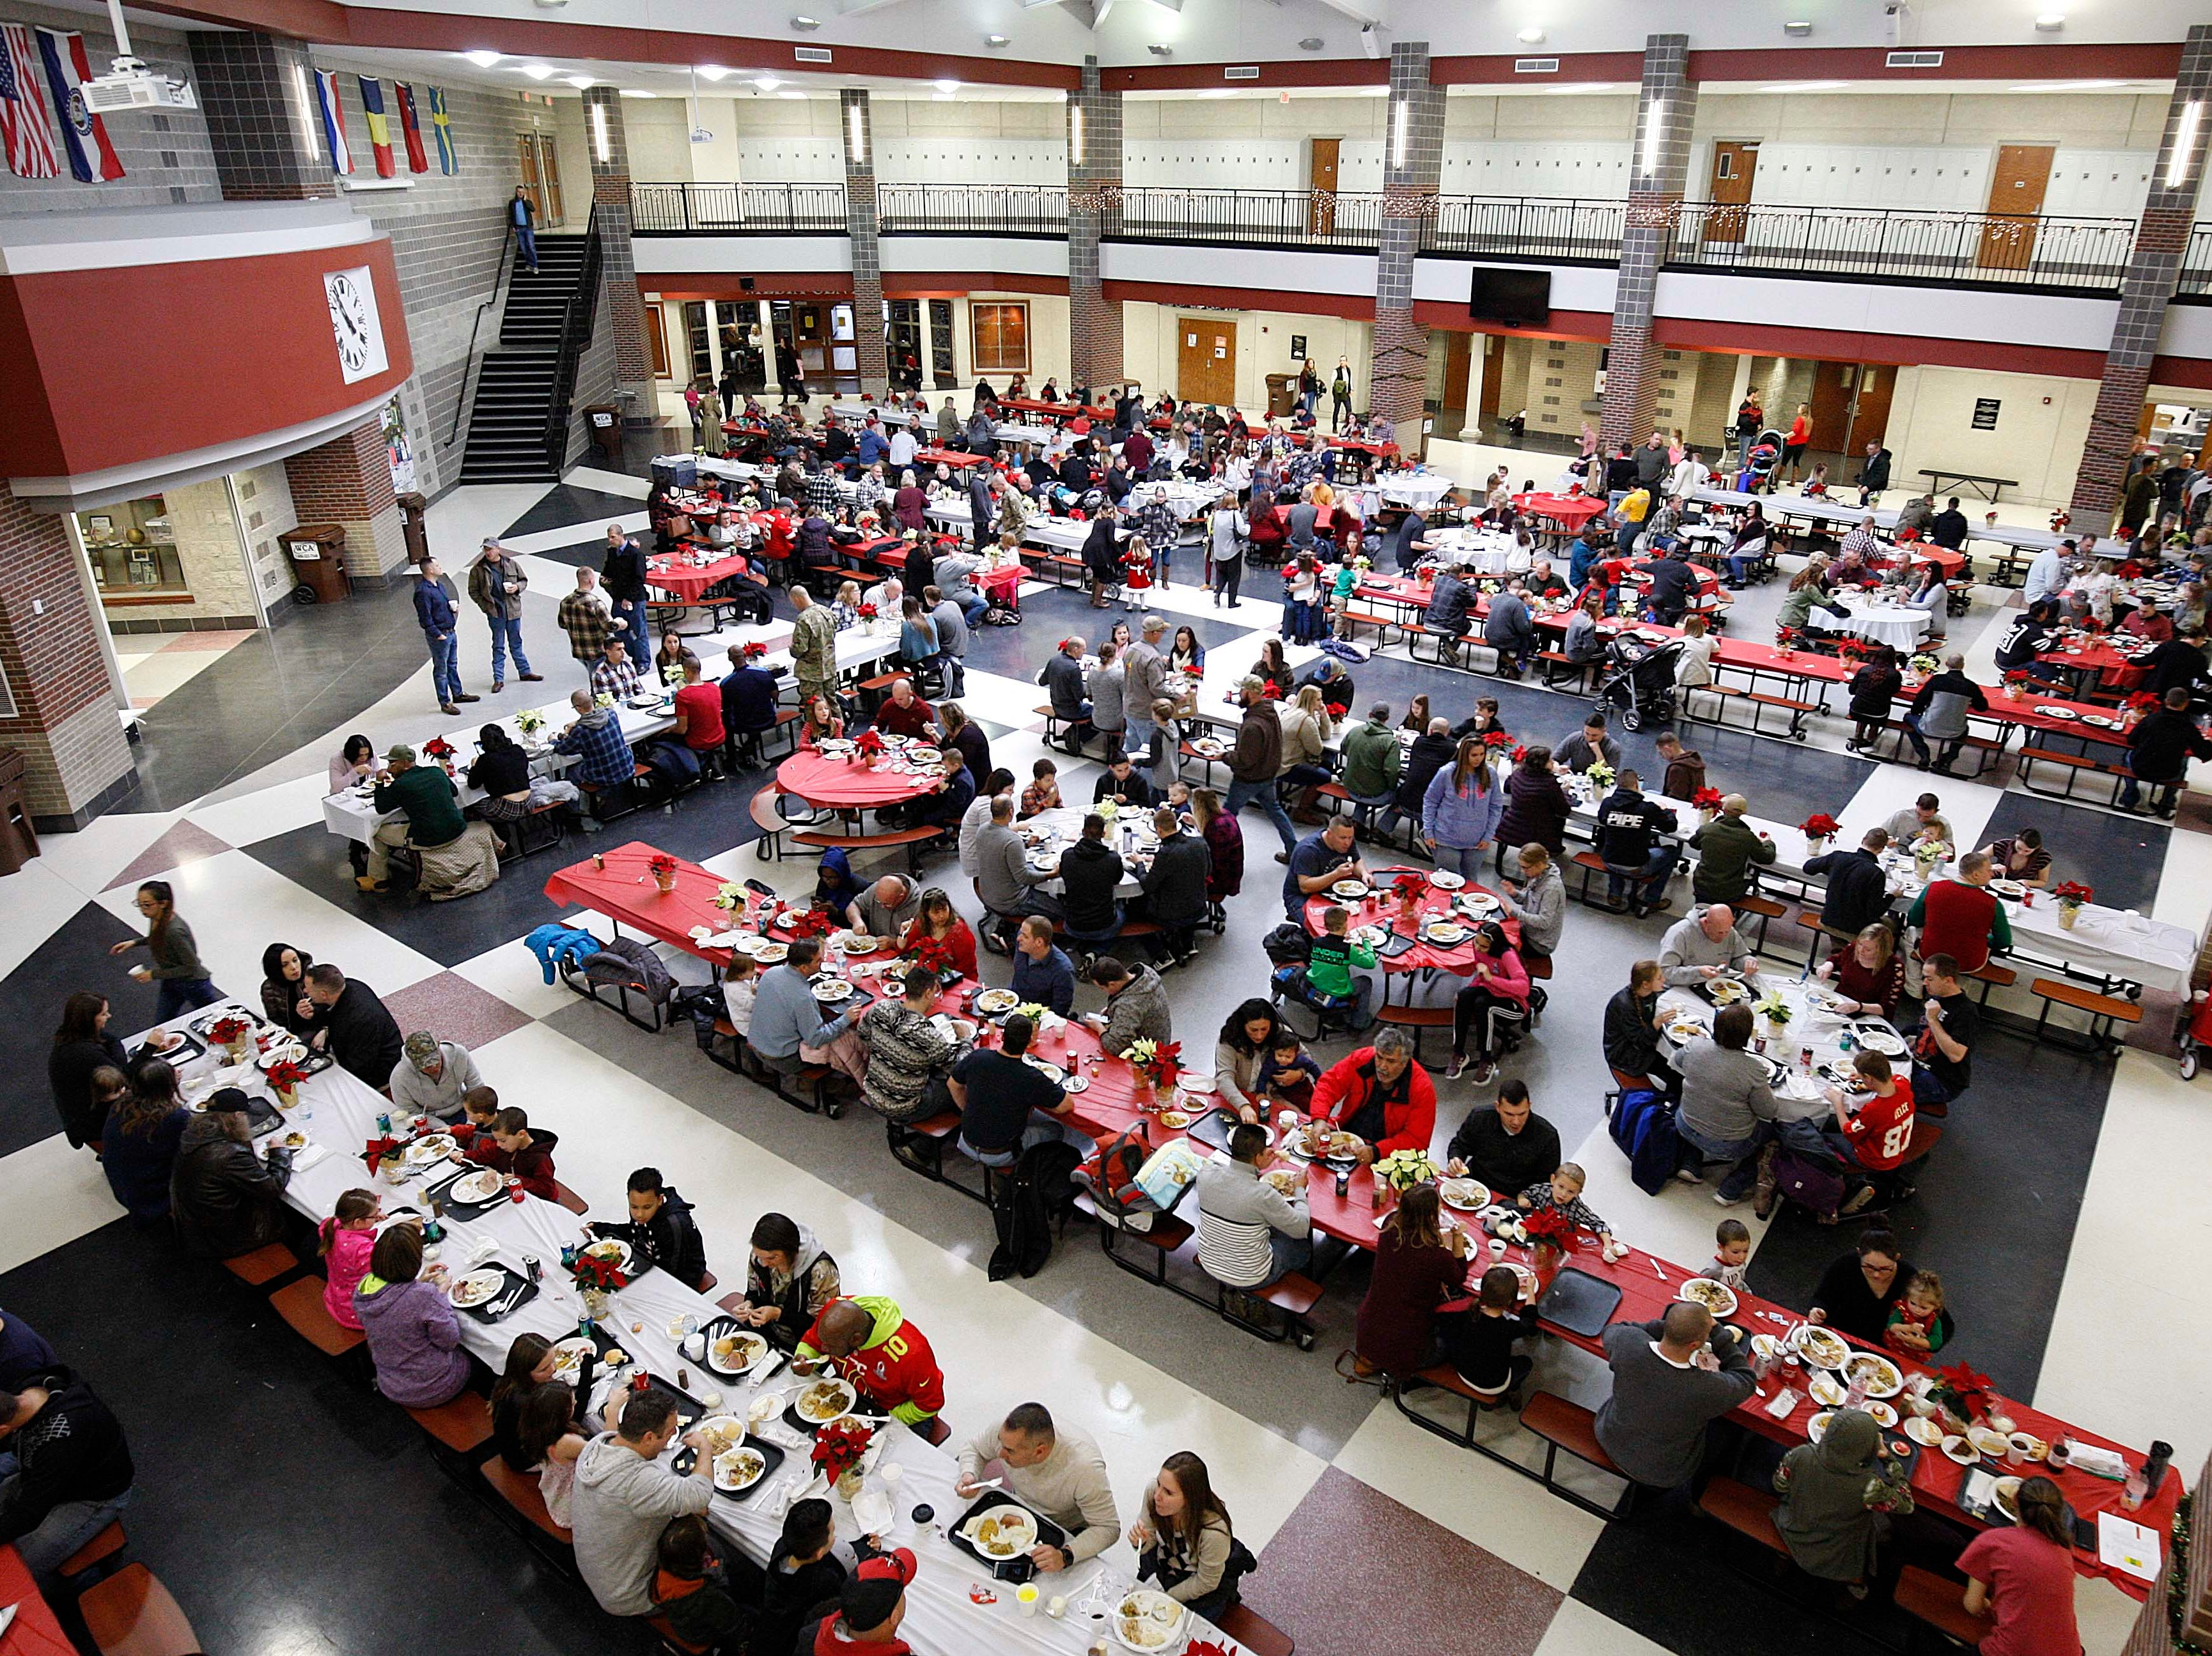 Hundreds gathered to eat at the Holiday Dinner put on by Amvets Post 188 at Willard High School on Dec. 2, 2018.